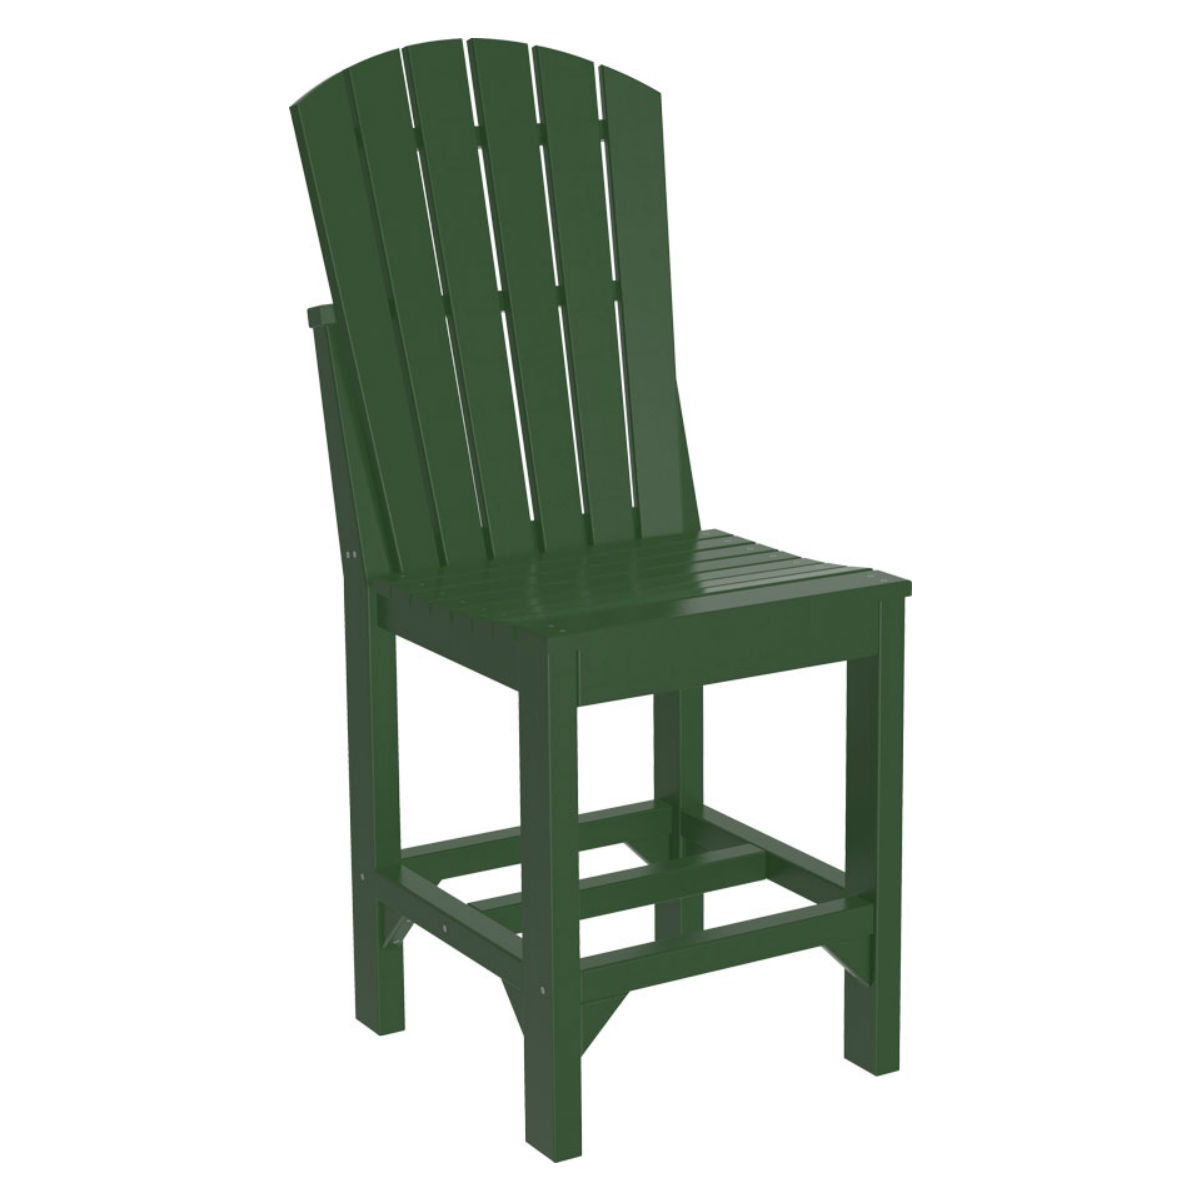 Adirondack Counter Chair - Green